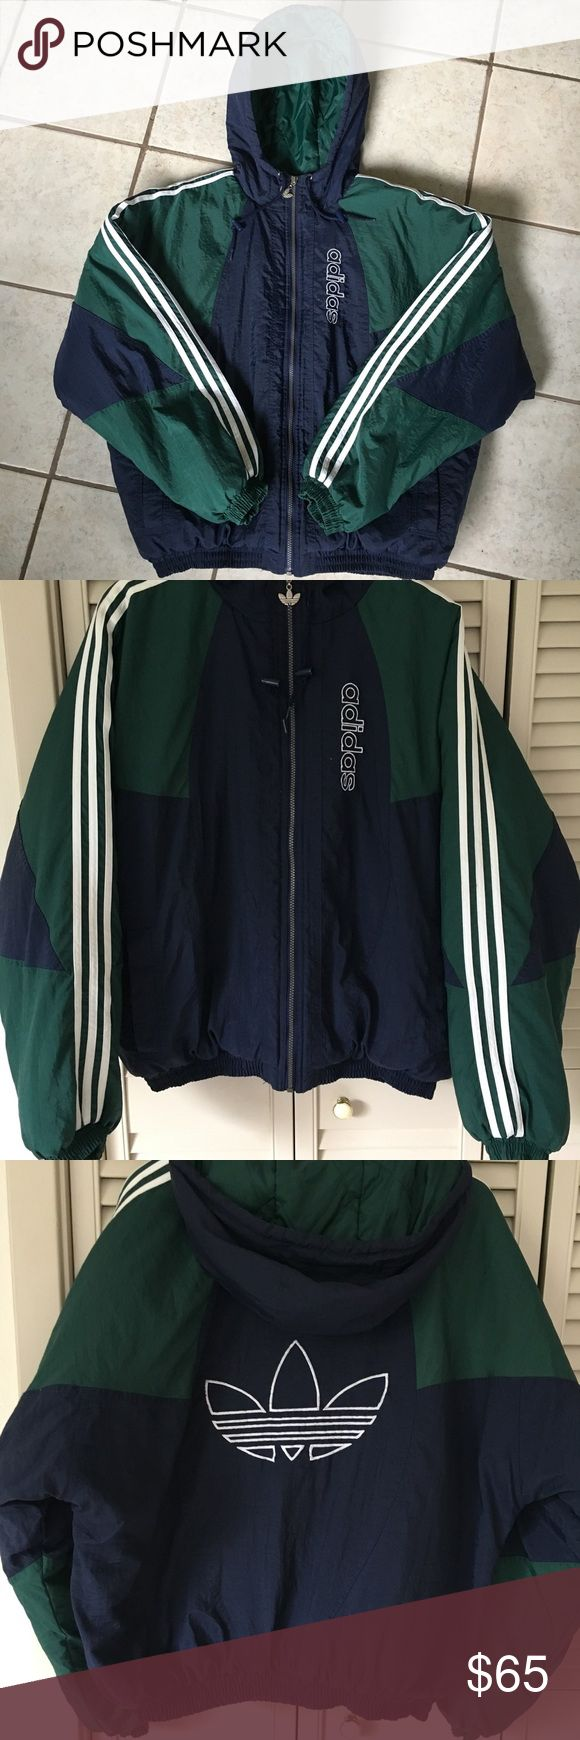 Vintage Adidas Puffer Jacket ADIDAS HEATA. Gorgeous vintage adidas men's puffer jacket. Forest green and navy blue. White embroidered adidas logo on front chest and center of back. Three white stripes on both sleeves. No stains or holes. Great condition! Men's large. adidas Jackets & Coats Puffers